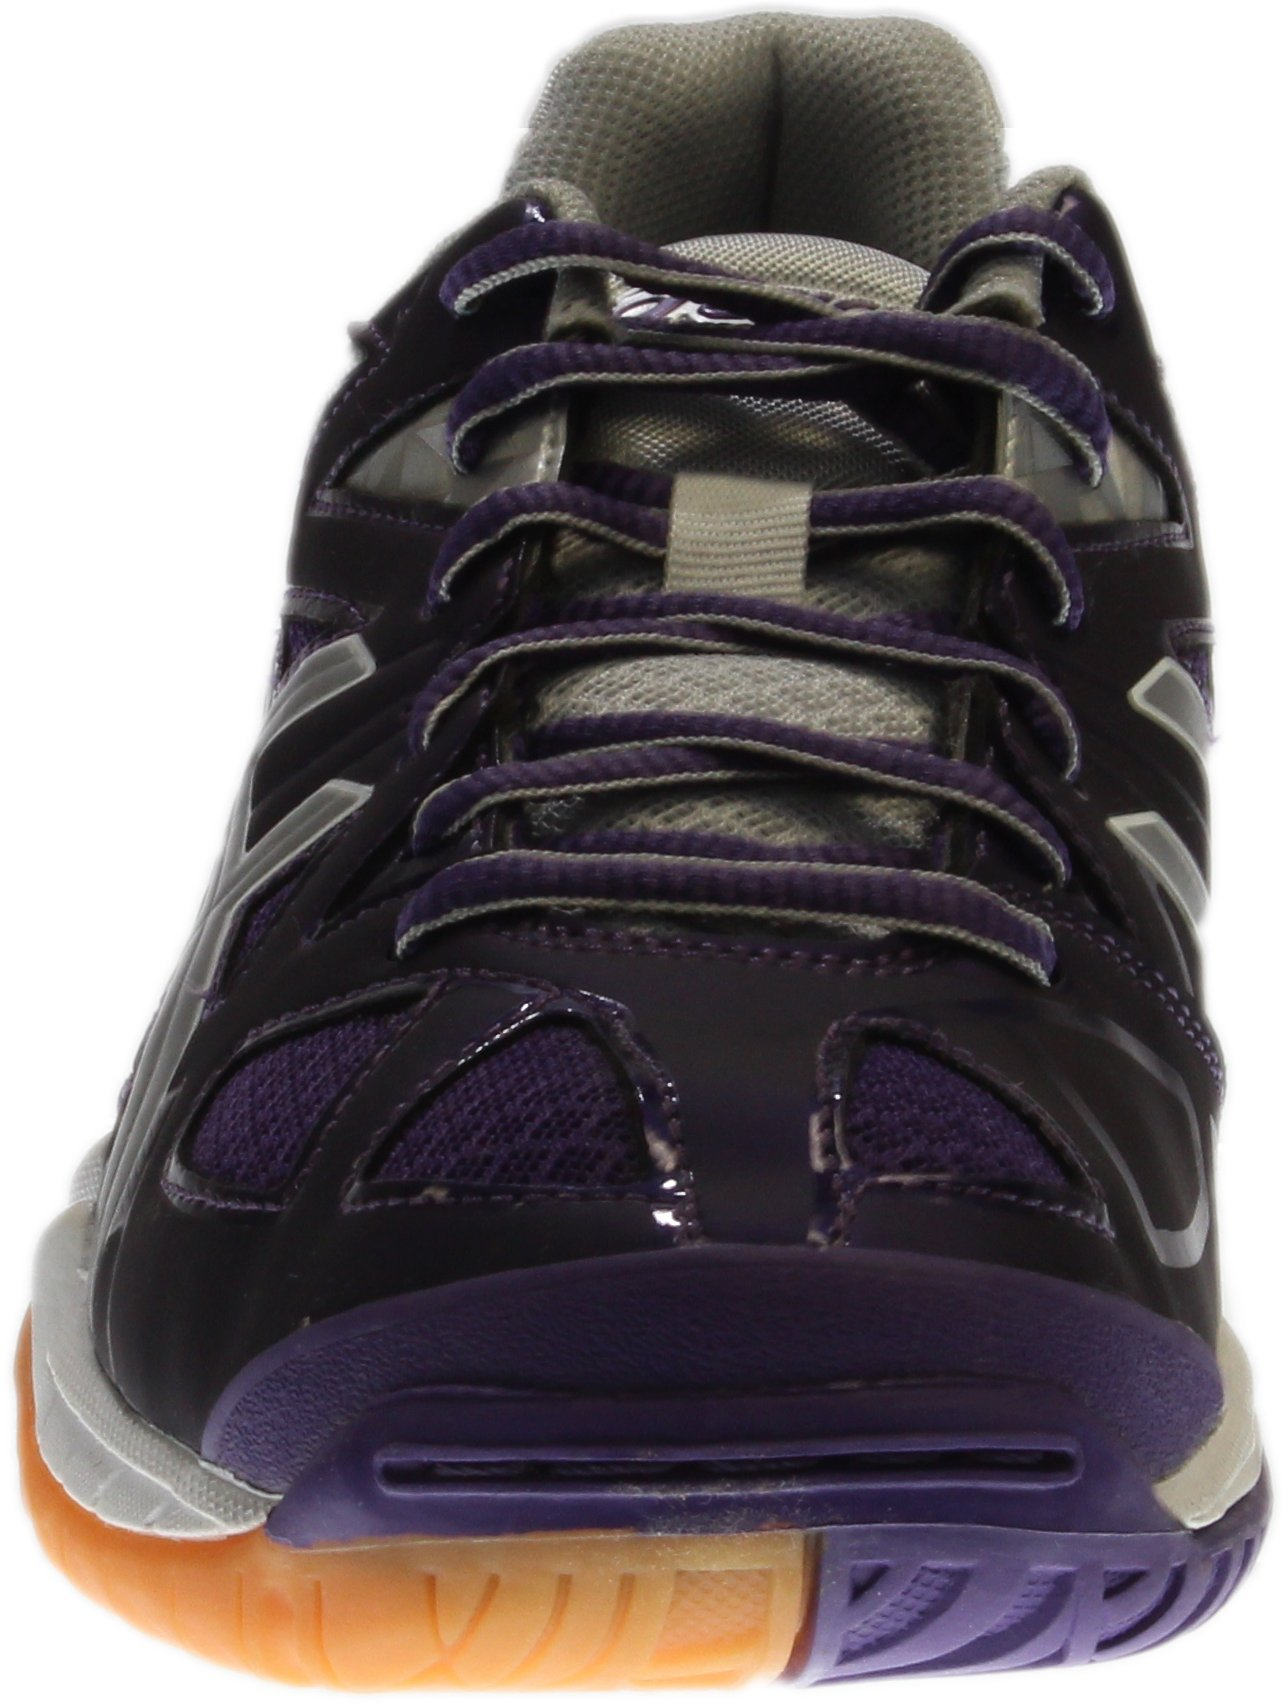 ASICS Women's Gel Tactic Volleyball Shoe, Purple/Silver/White, 9.5 M US by ASICS (Image #5)